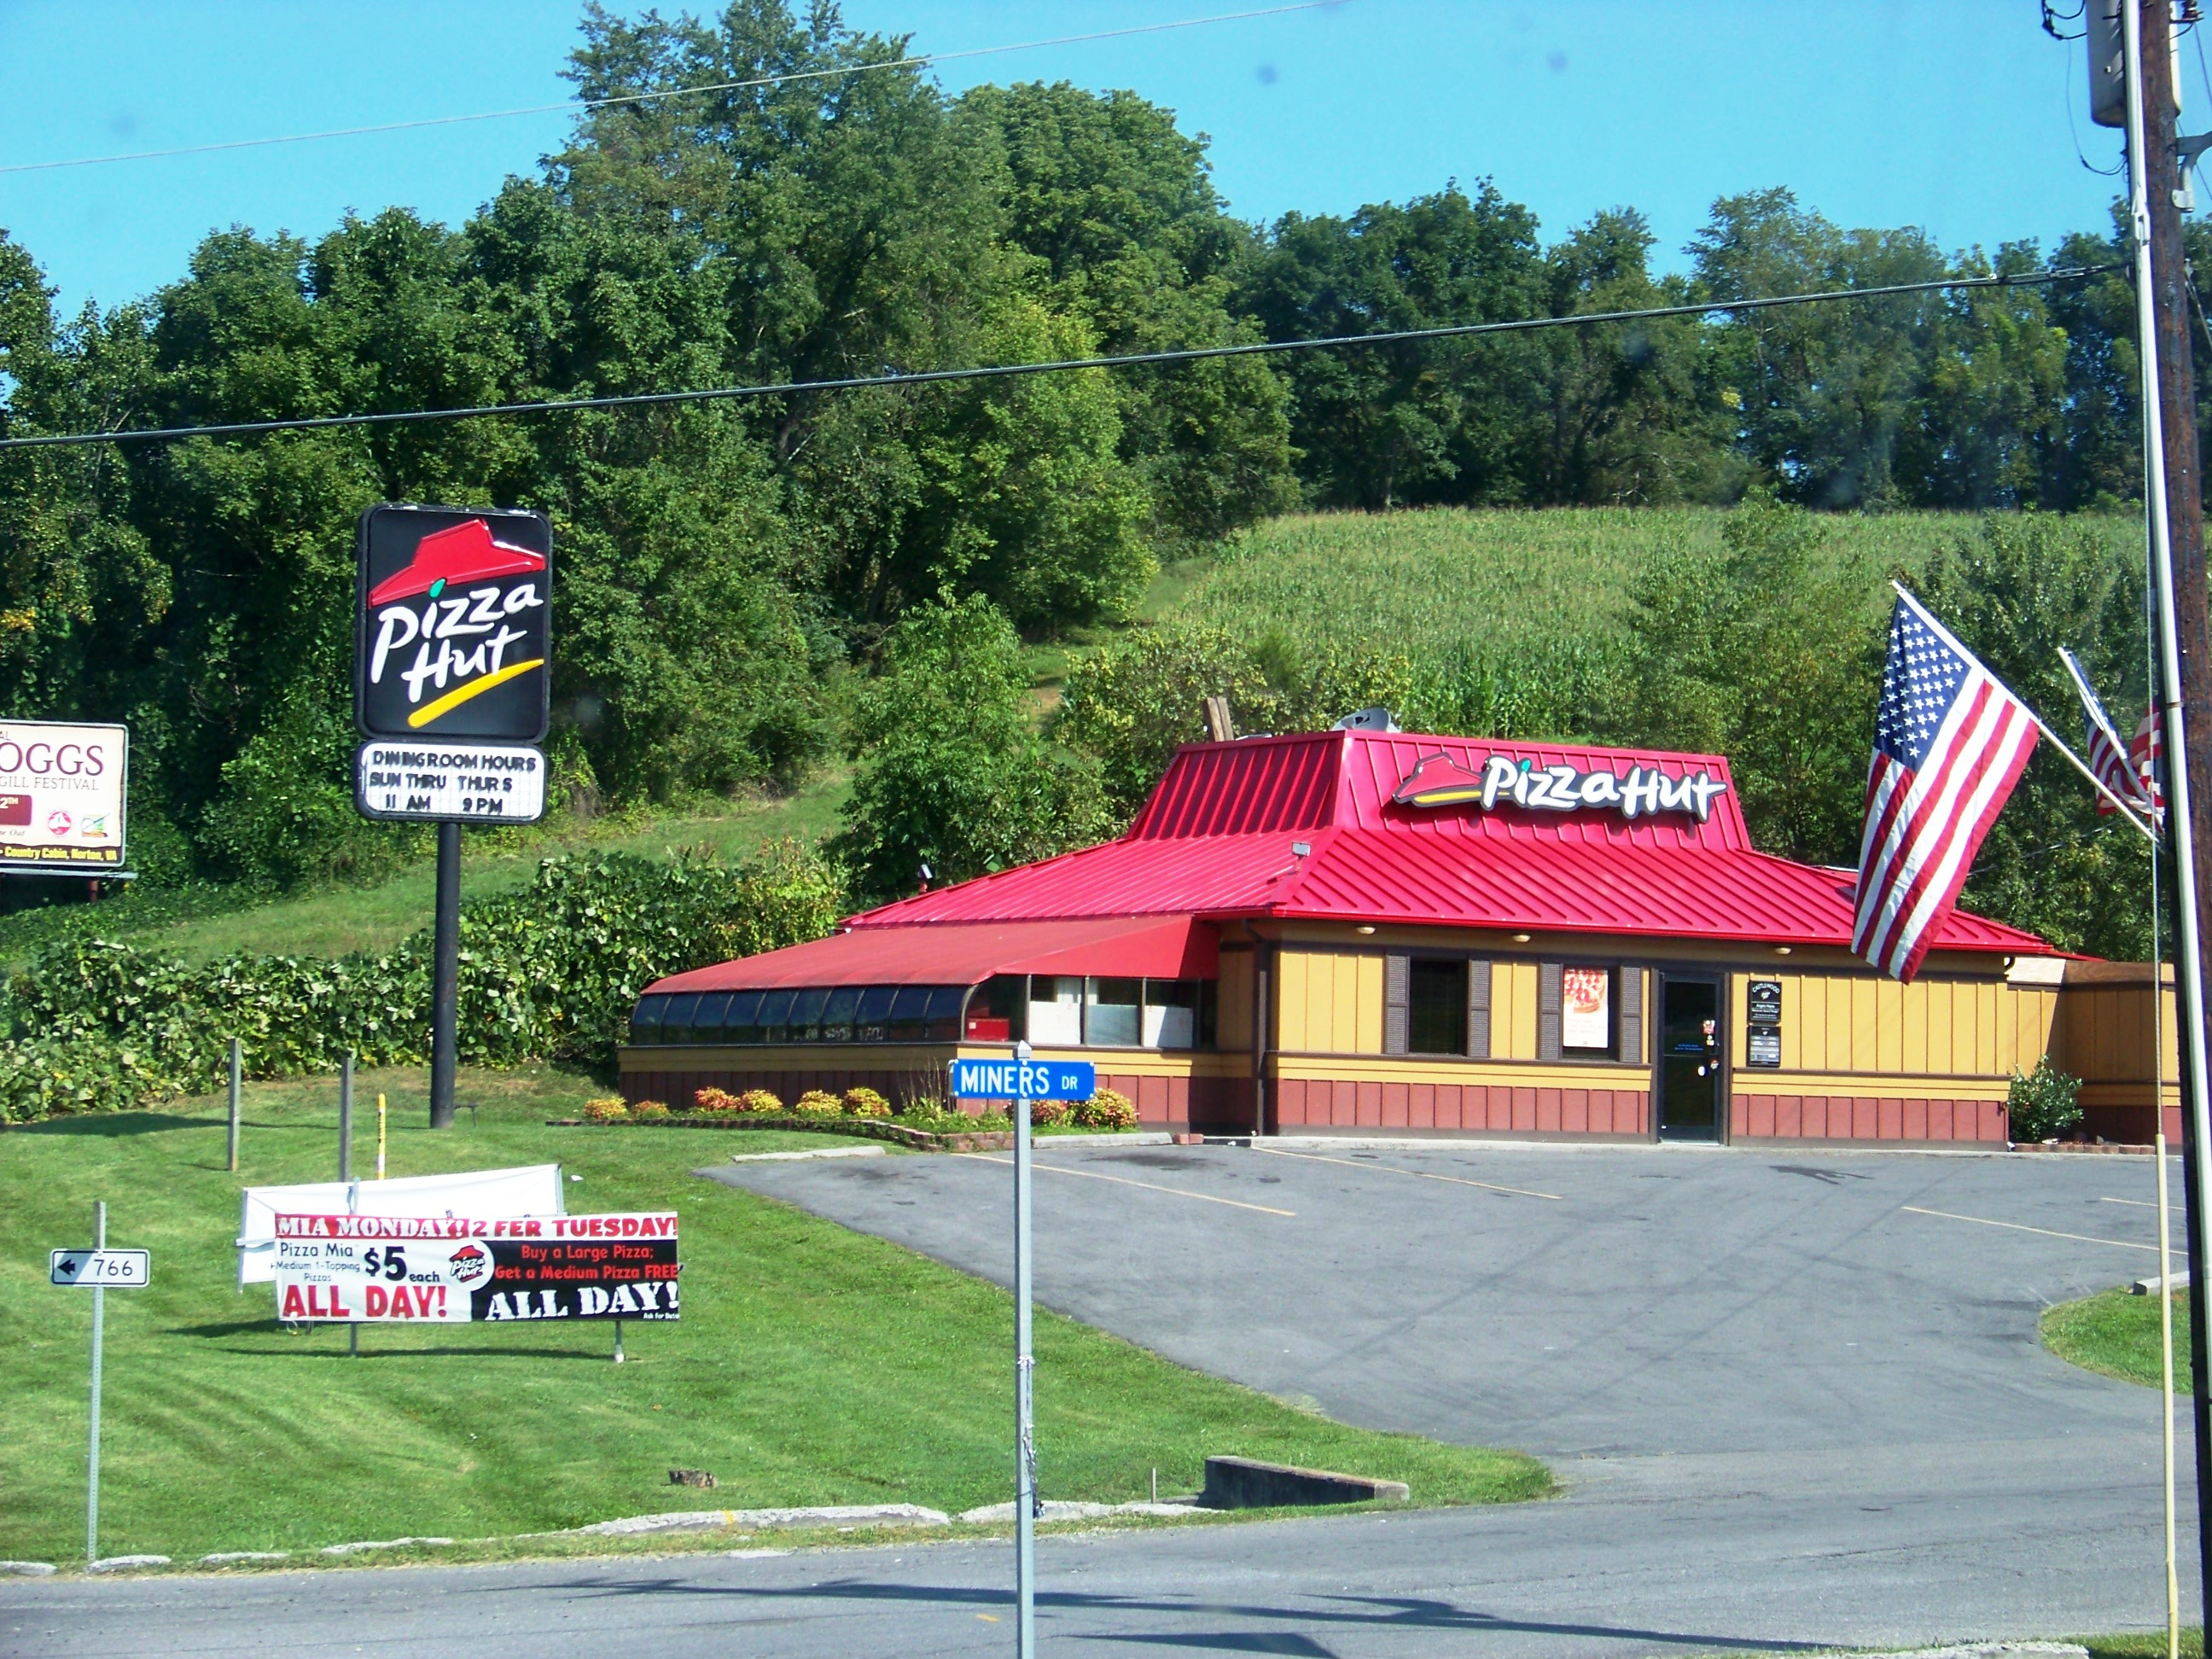 Pizza hut castlewood virginia